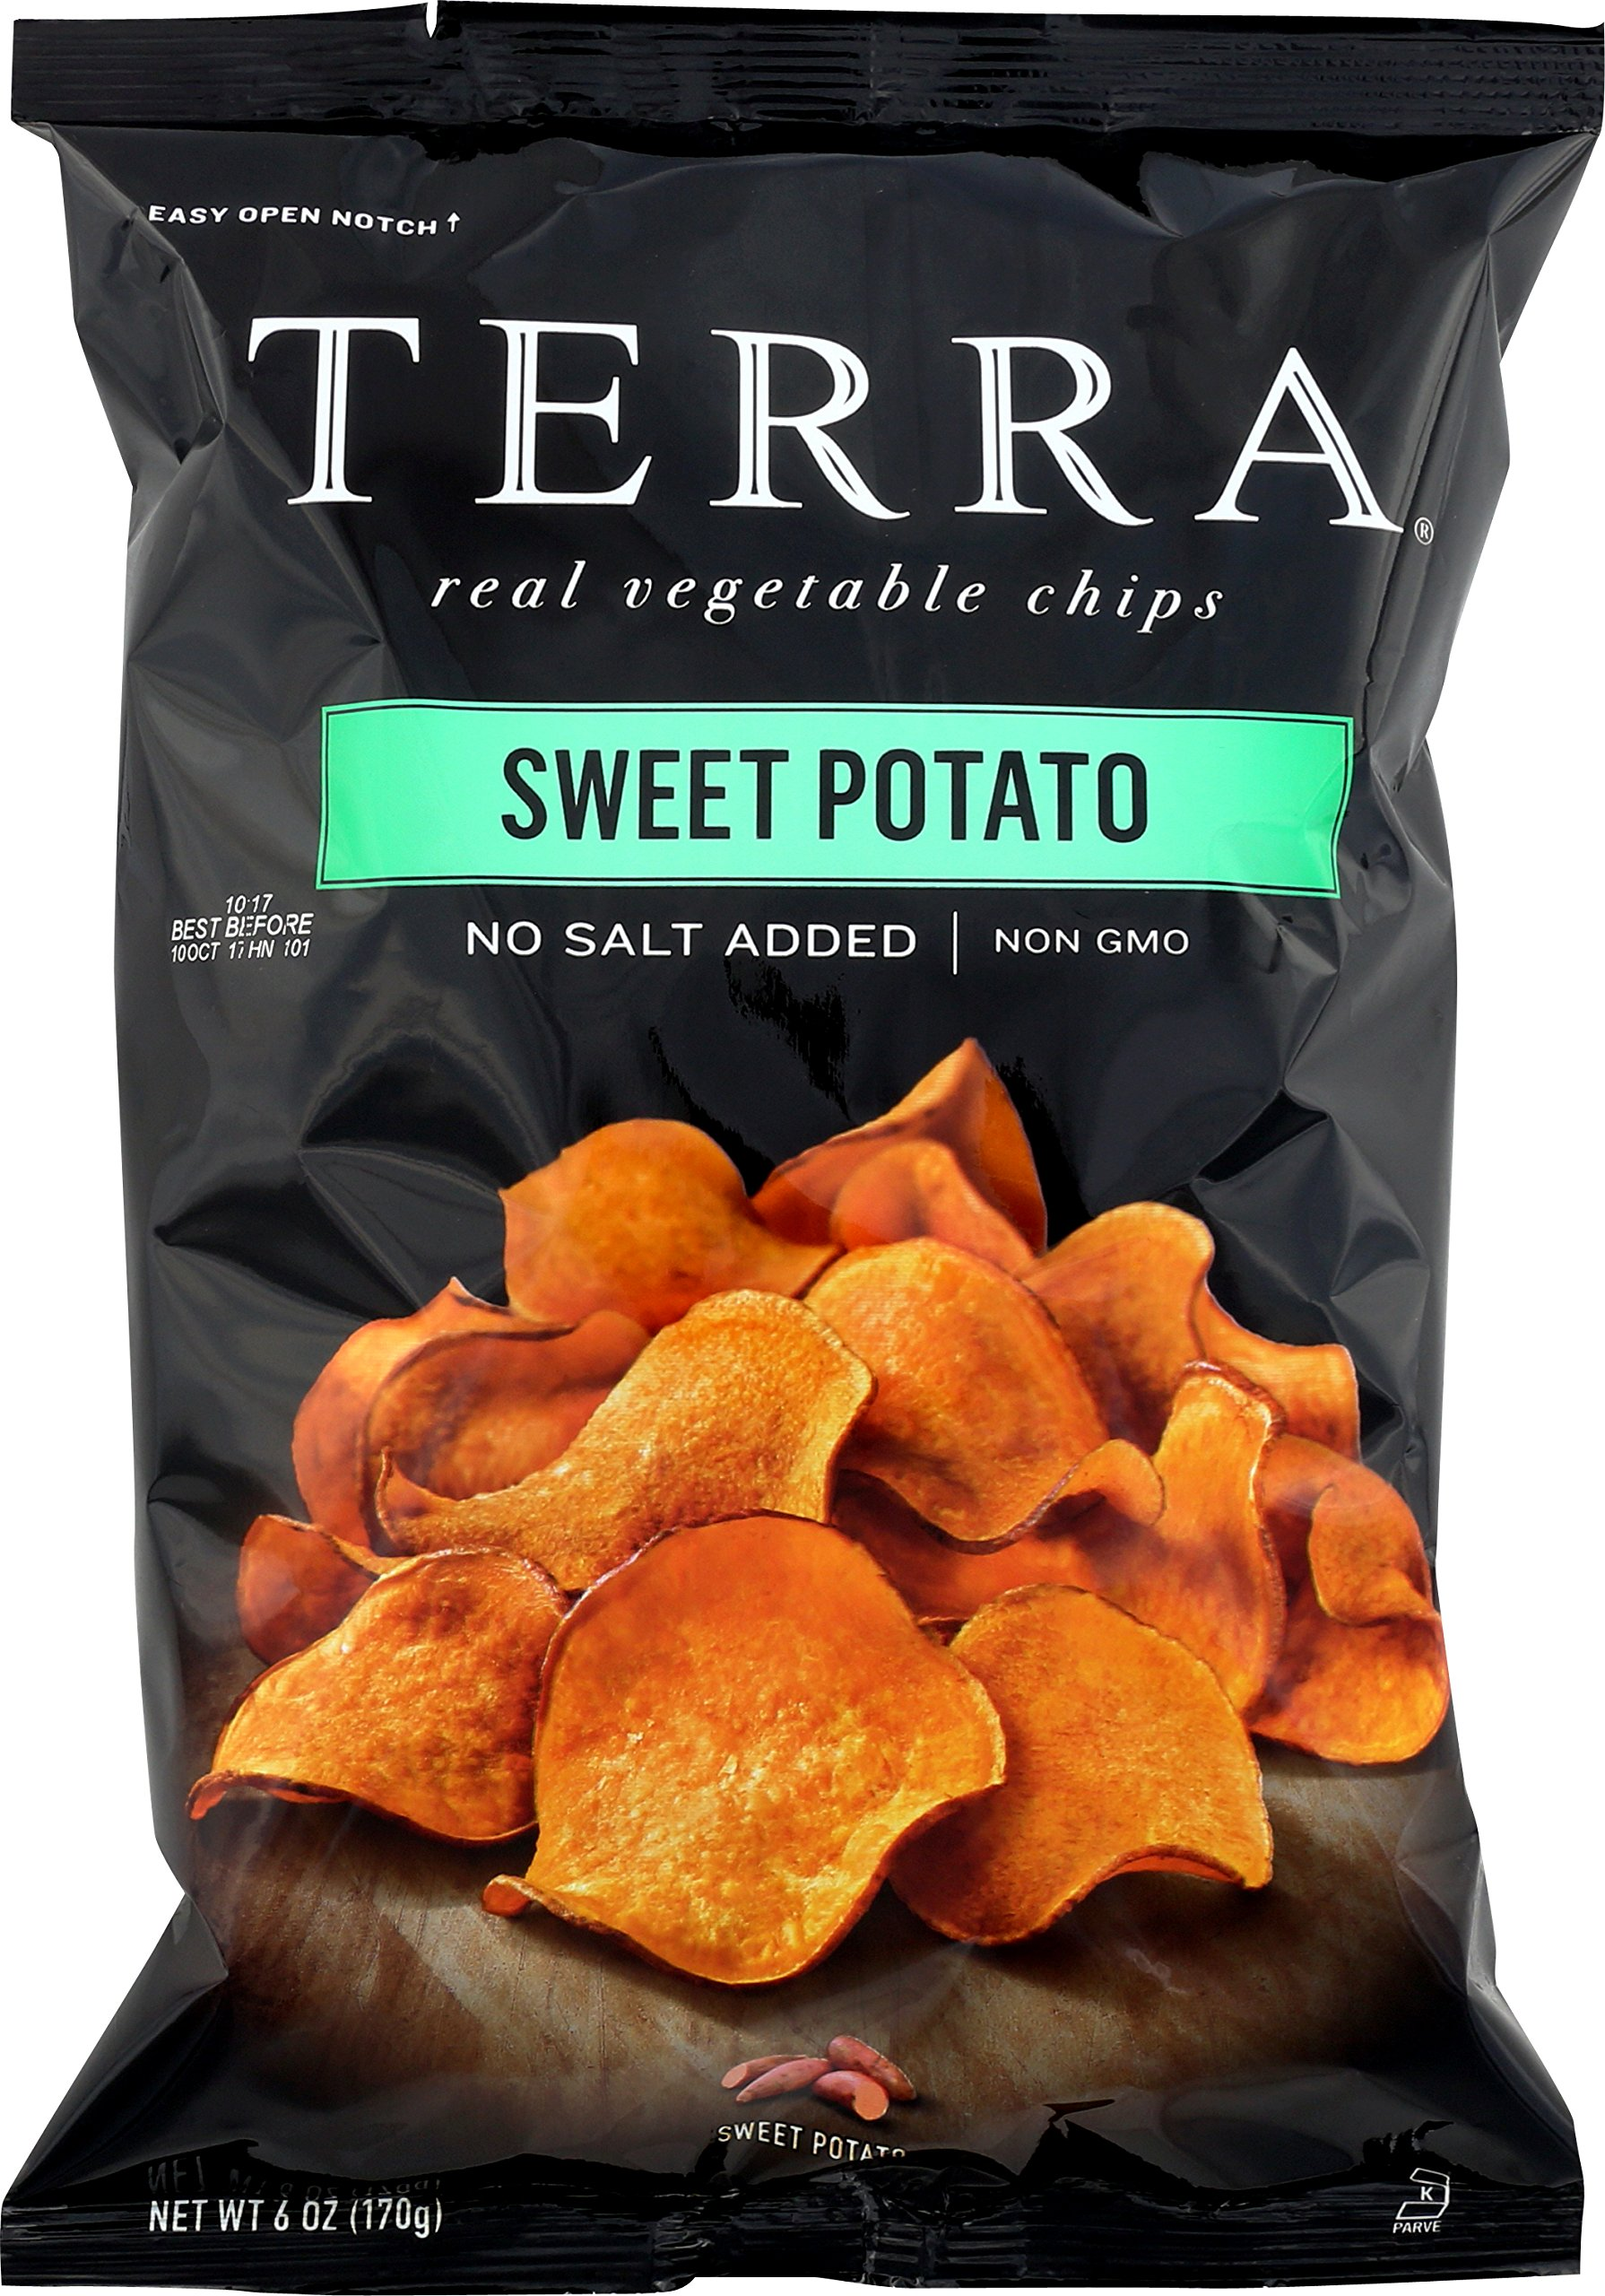 Terra Sweet Potato, No Salt Added, 6 oz